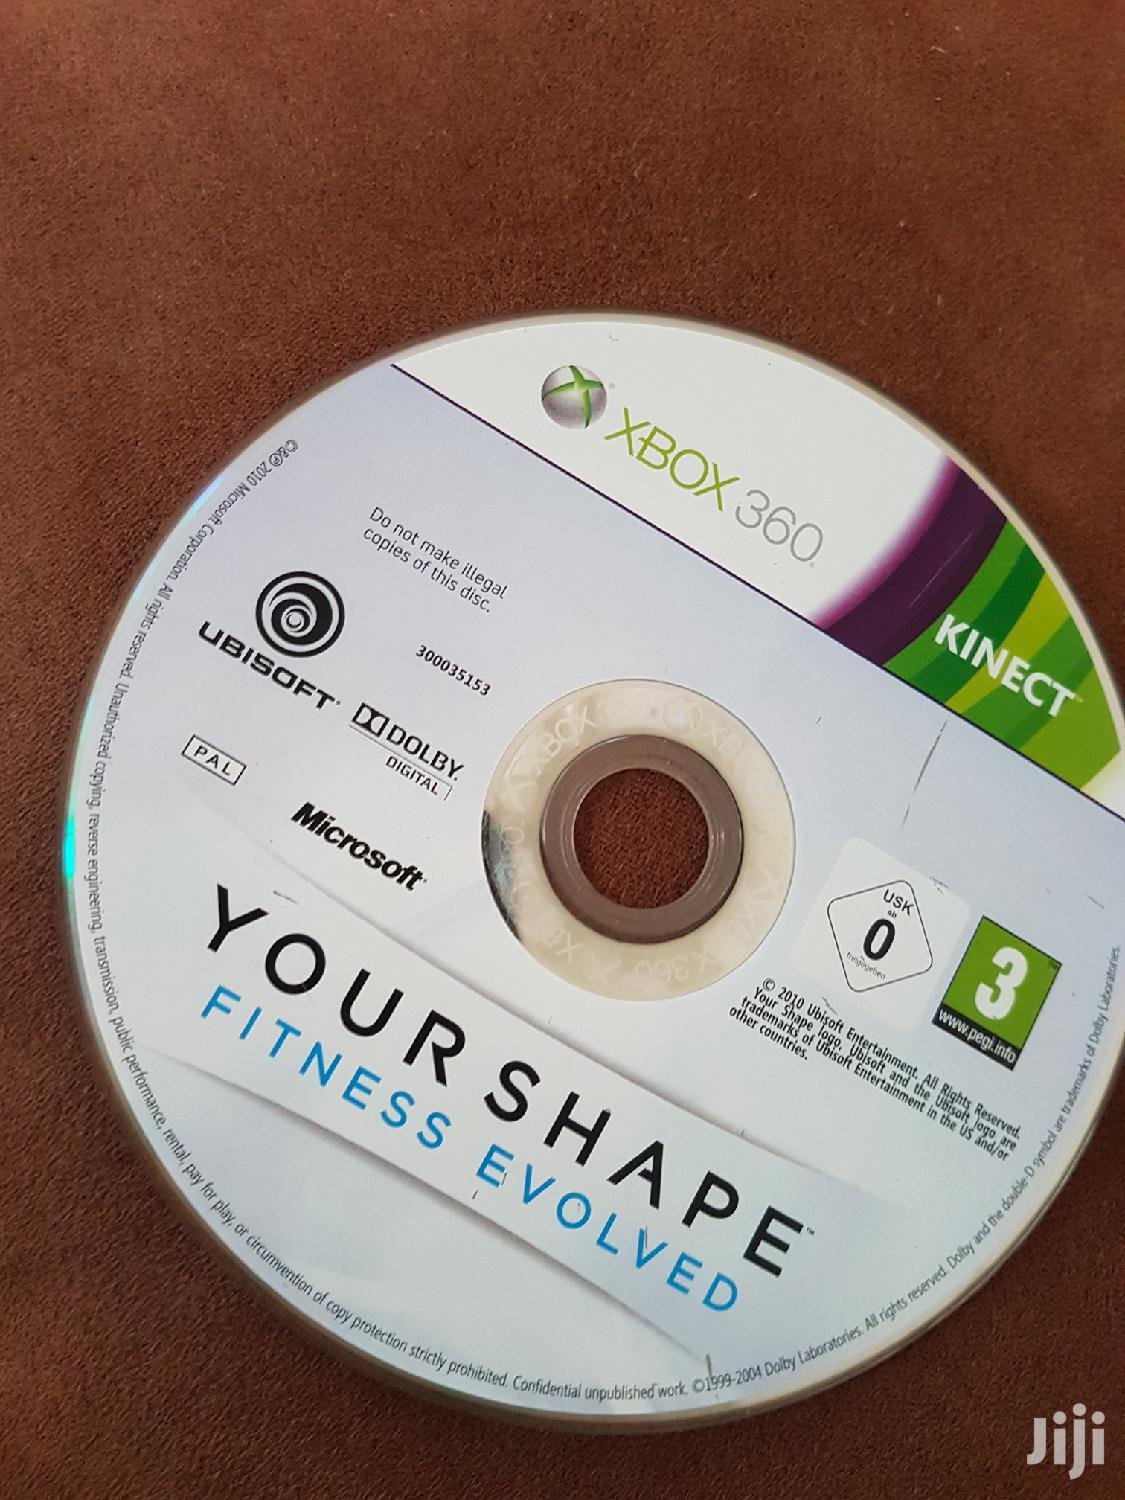 Archive: X Box 360 Kinect Cd